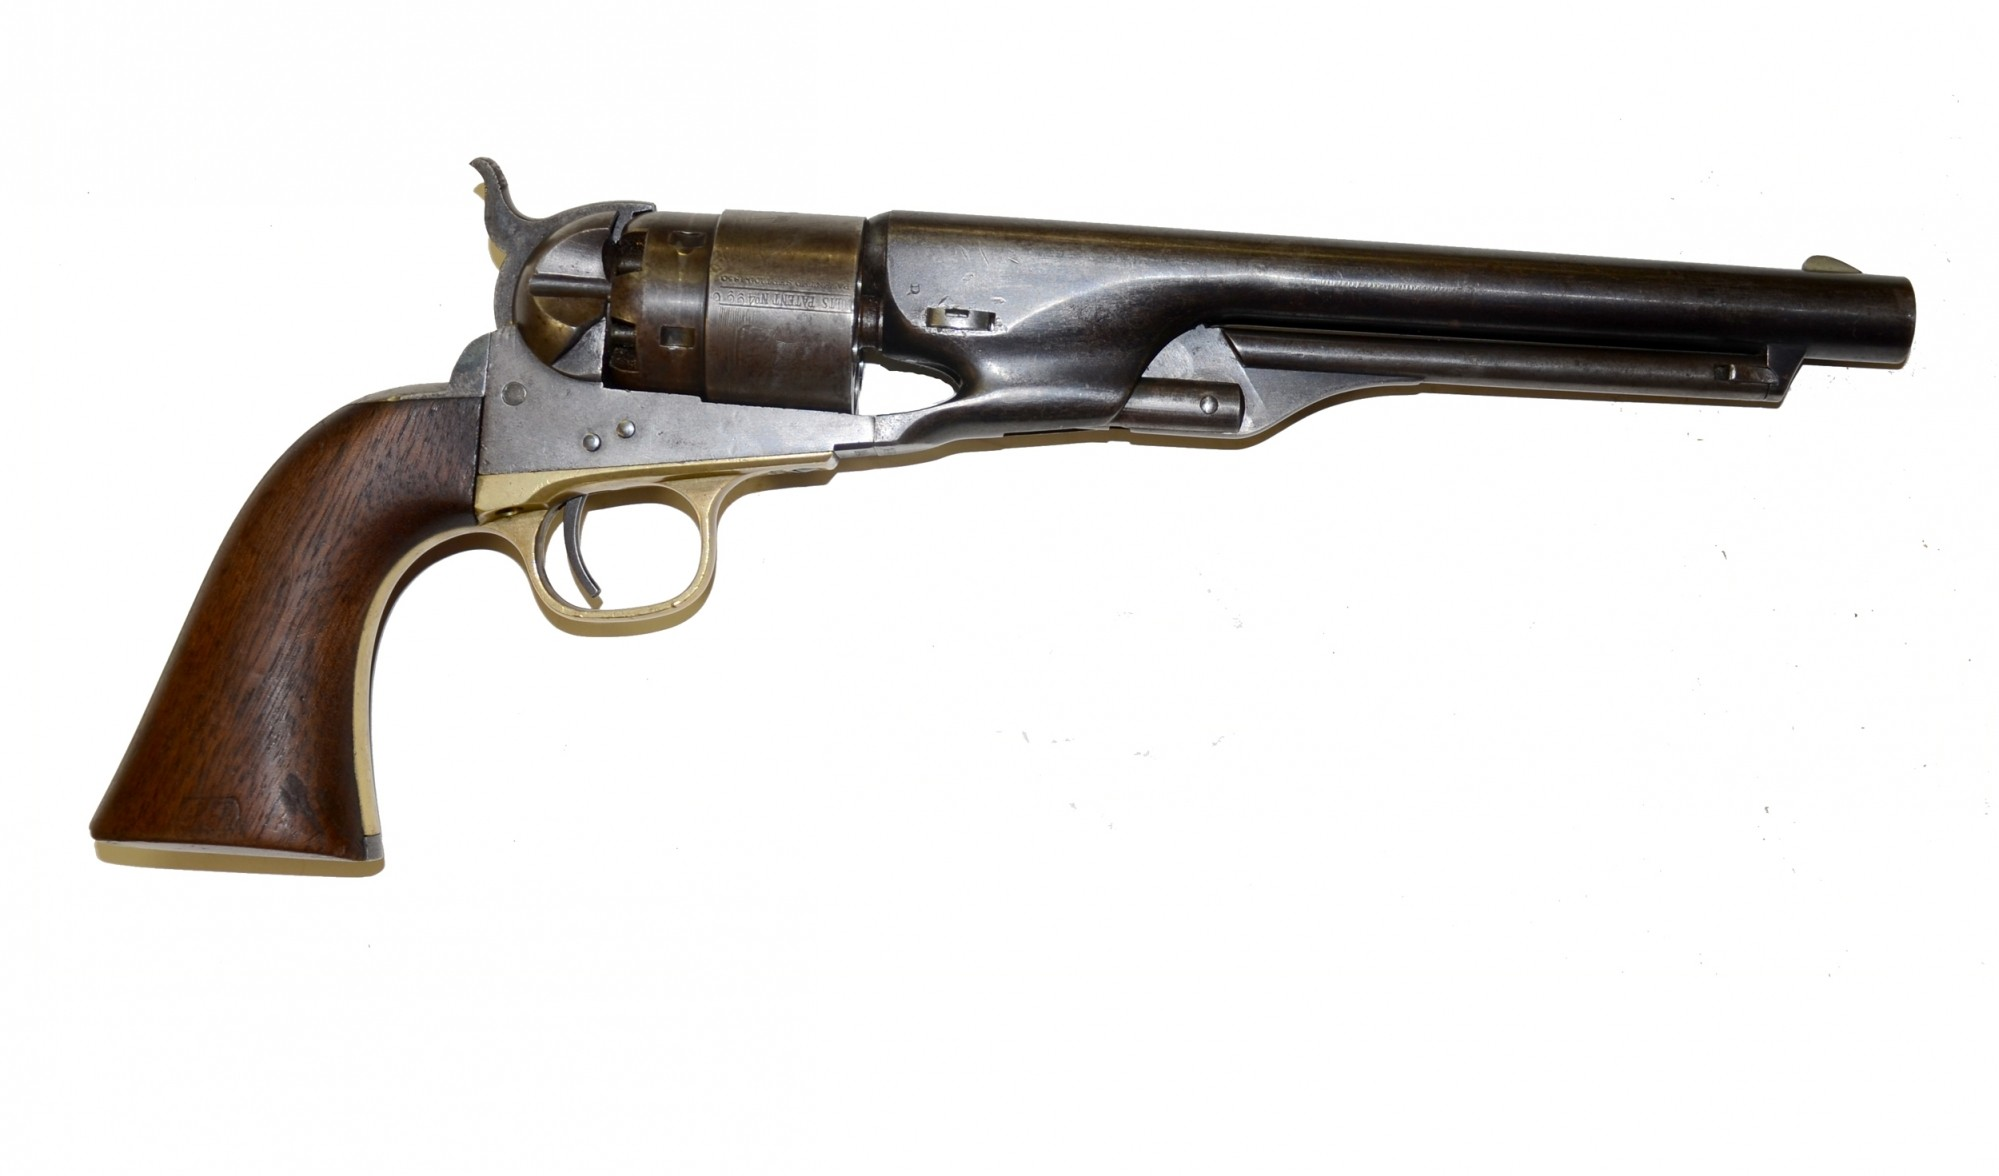 THREE-SCREW M1860 ARMY COLT REVOLVER